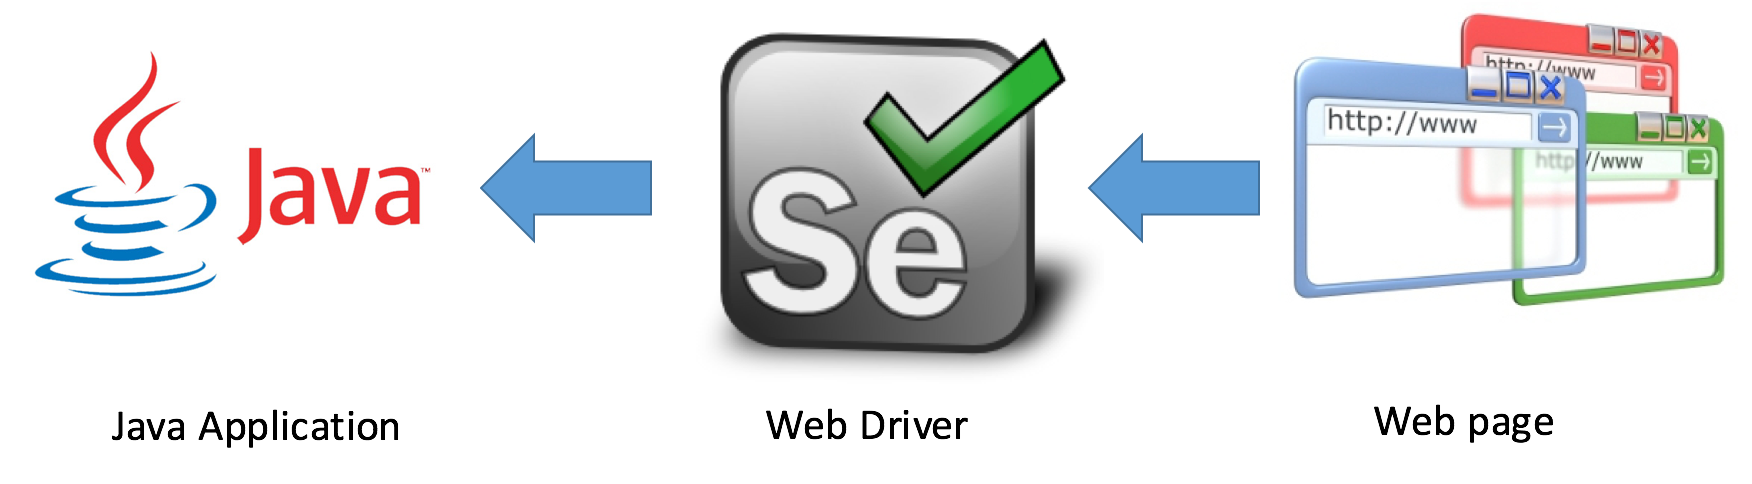 Web Crawling [Java][Selenium] - Tech Vision - Medium